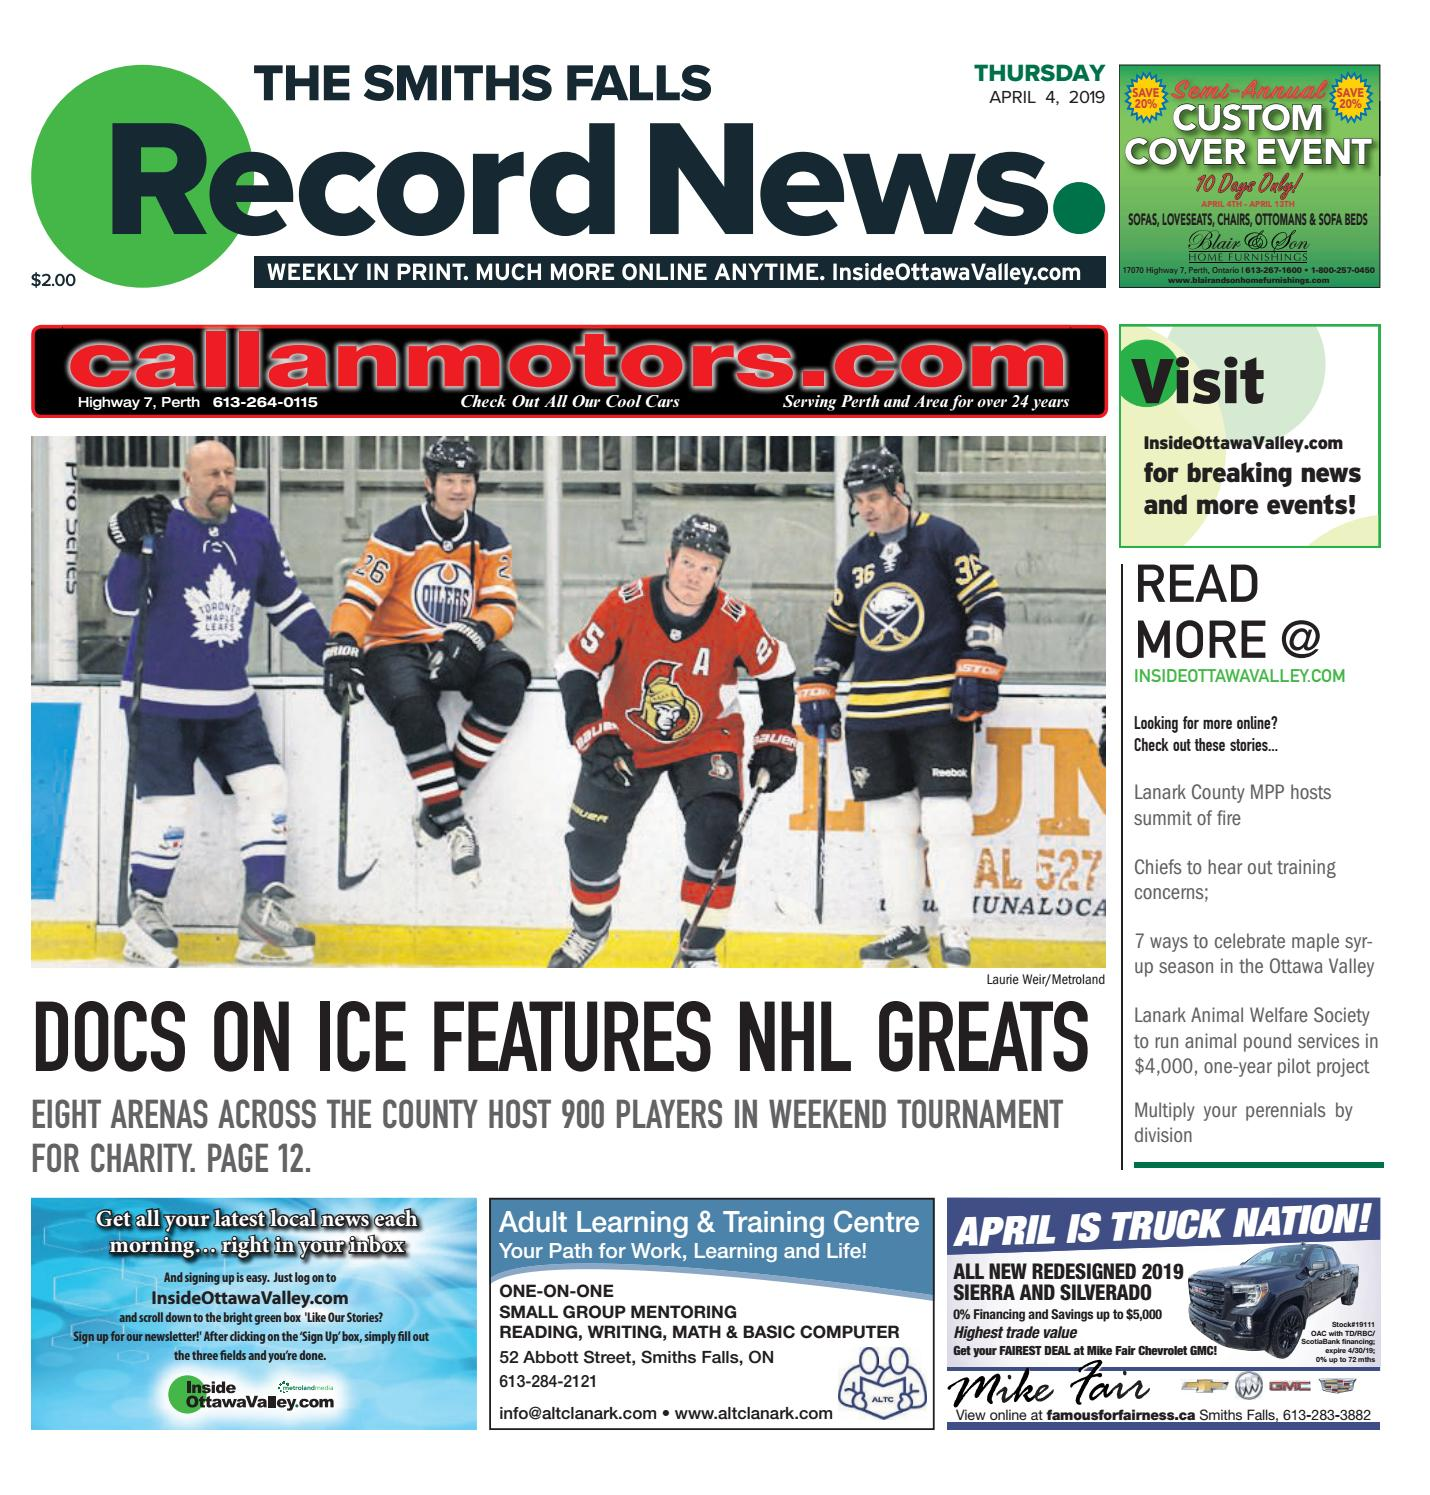 finest selection 1452c b2231 Smiths Falls Record News April 4, 2019 by Metroland East - Smiths Falls  Record News - issuu